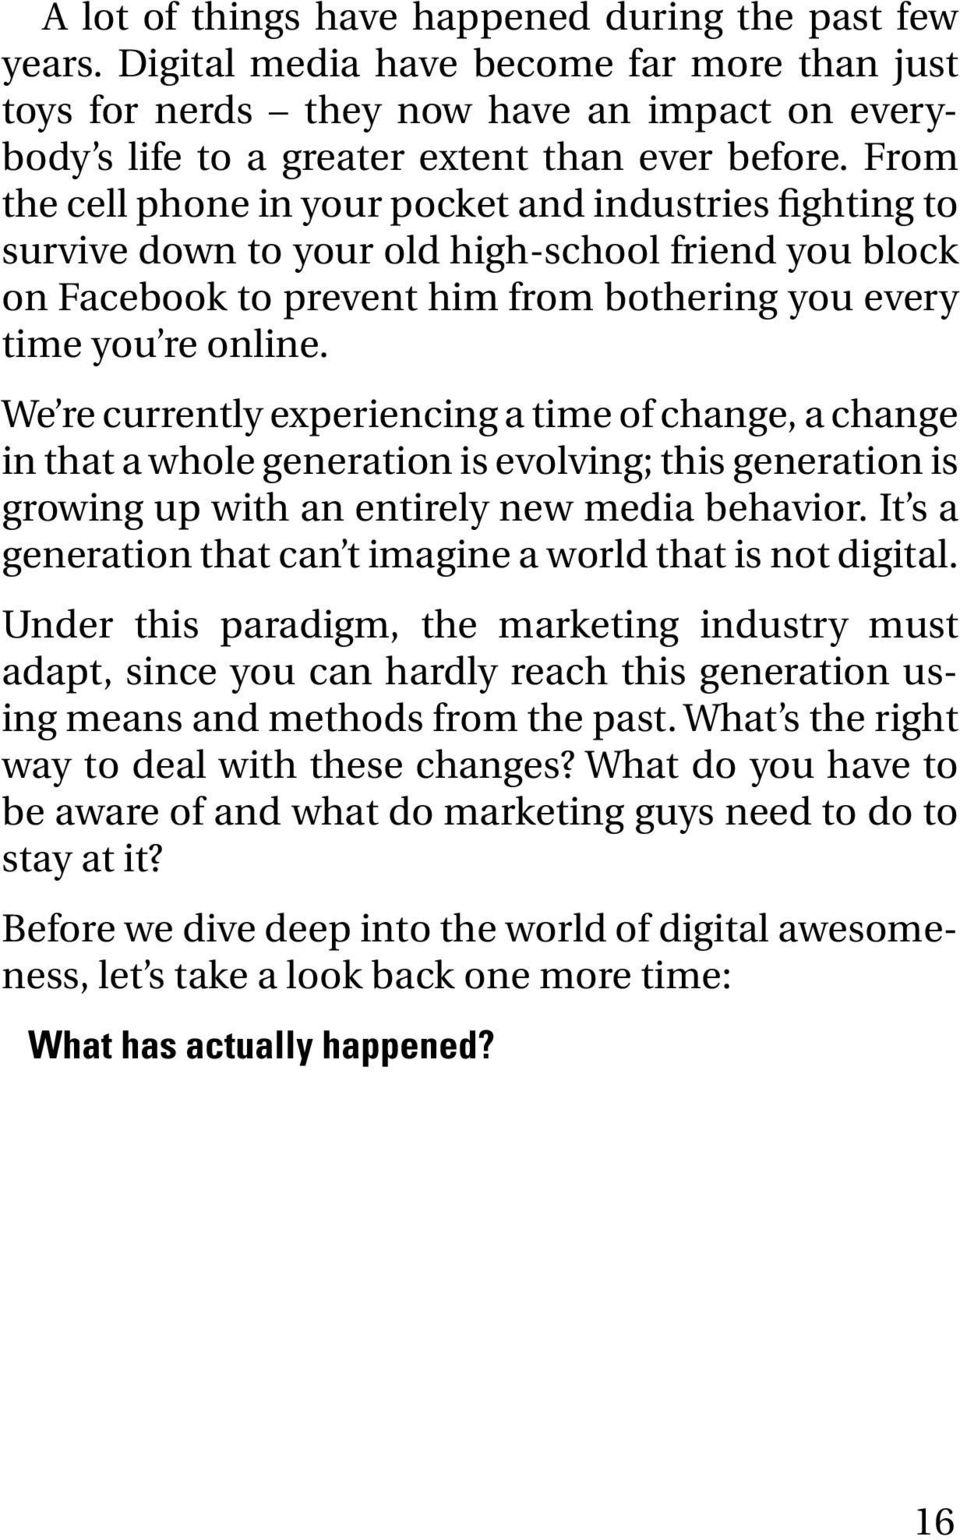 We re currently experiencing a time of change, a change in that a whole generation is evolving; this generation is growing up with an entirely new media behavior.